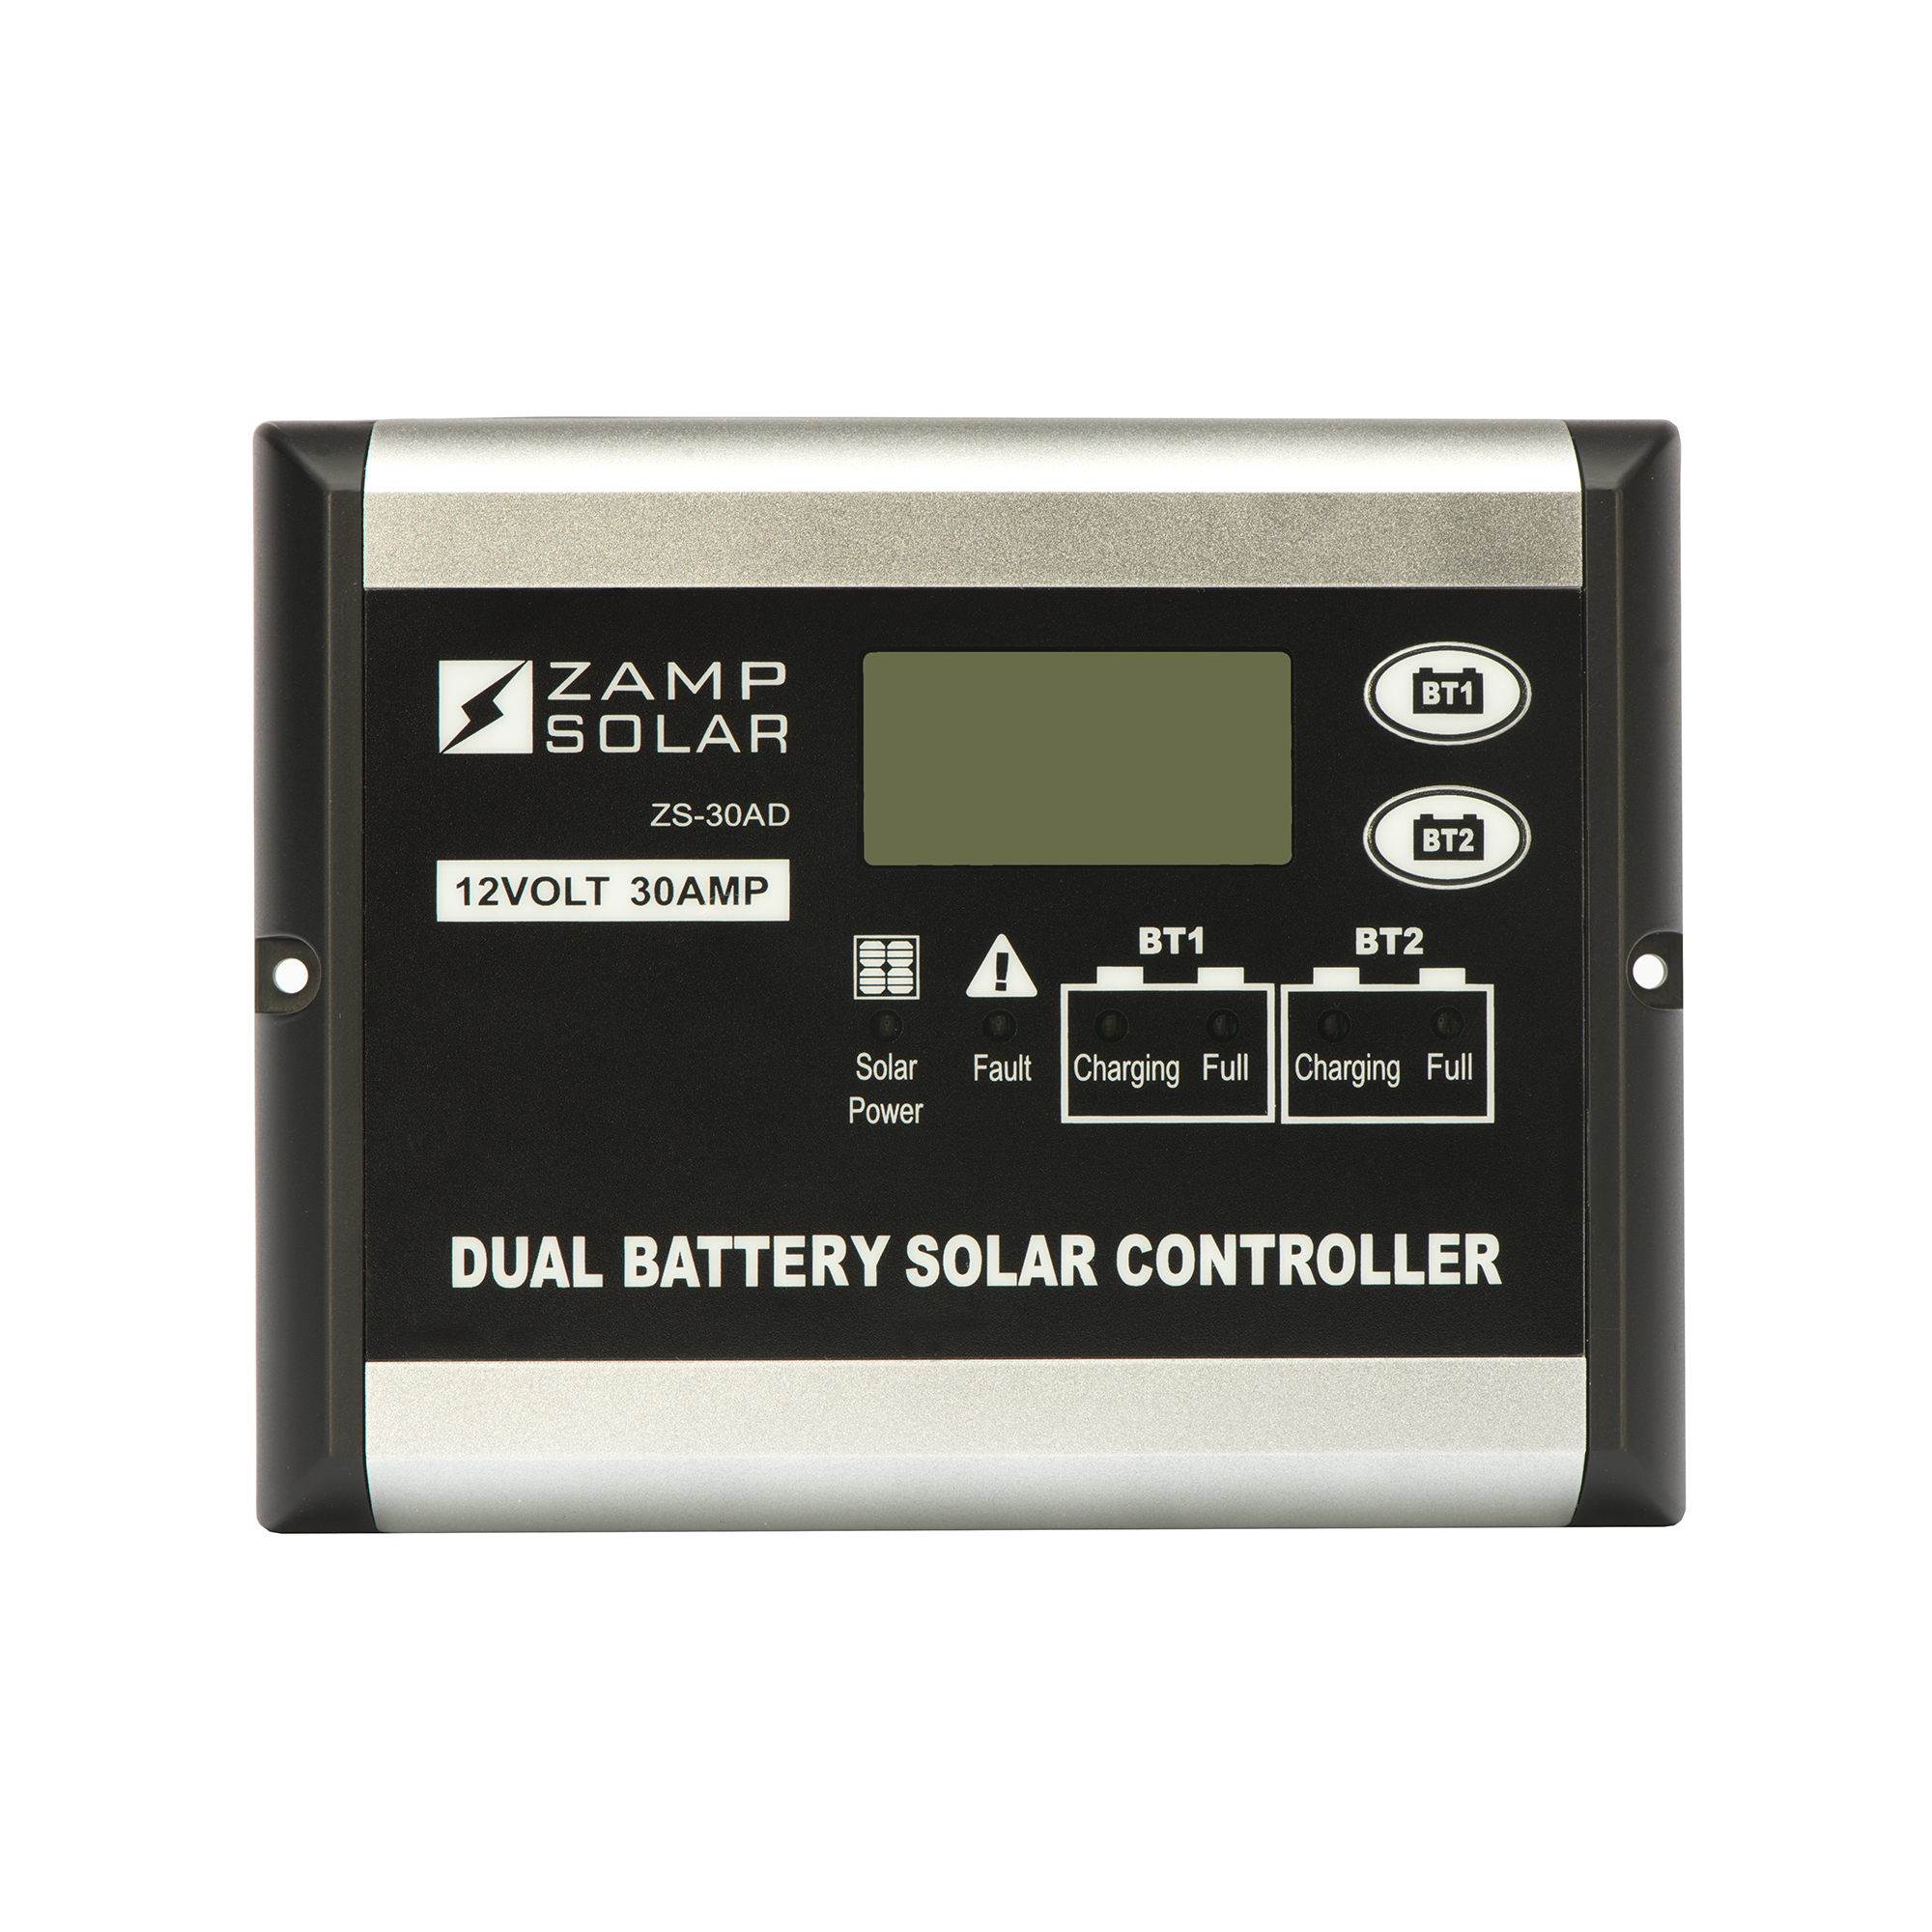 Zamp Solar ZS-30AD Battery Charger Controller  Use With Zamp Solar 12 Volt Batteries; Digital Solar Controller; 500 Watts; 30 Ampere - image 1 of 1